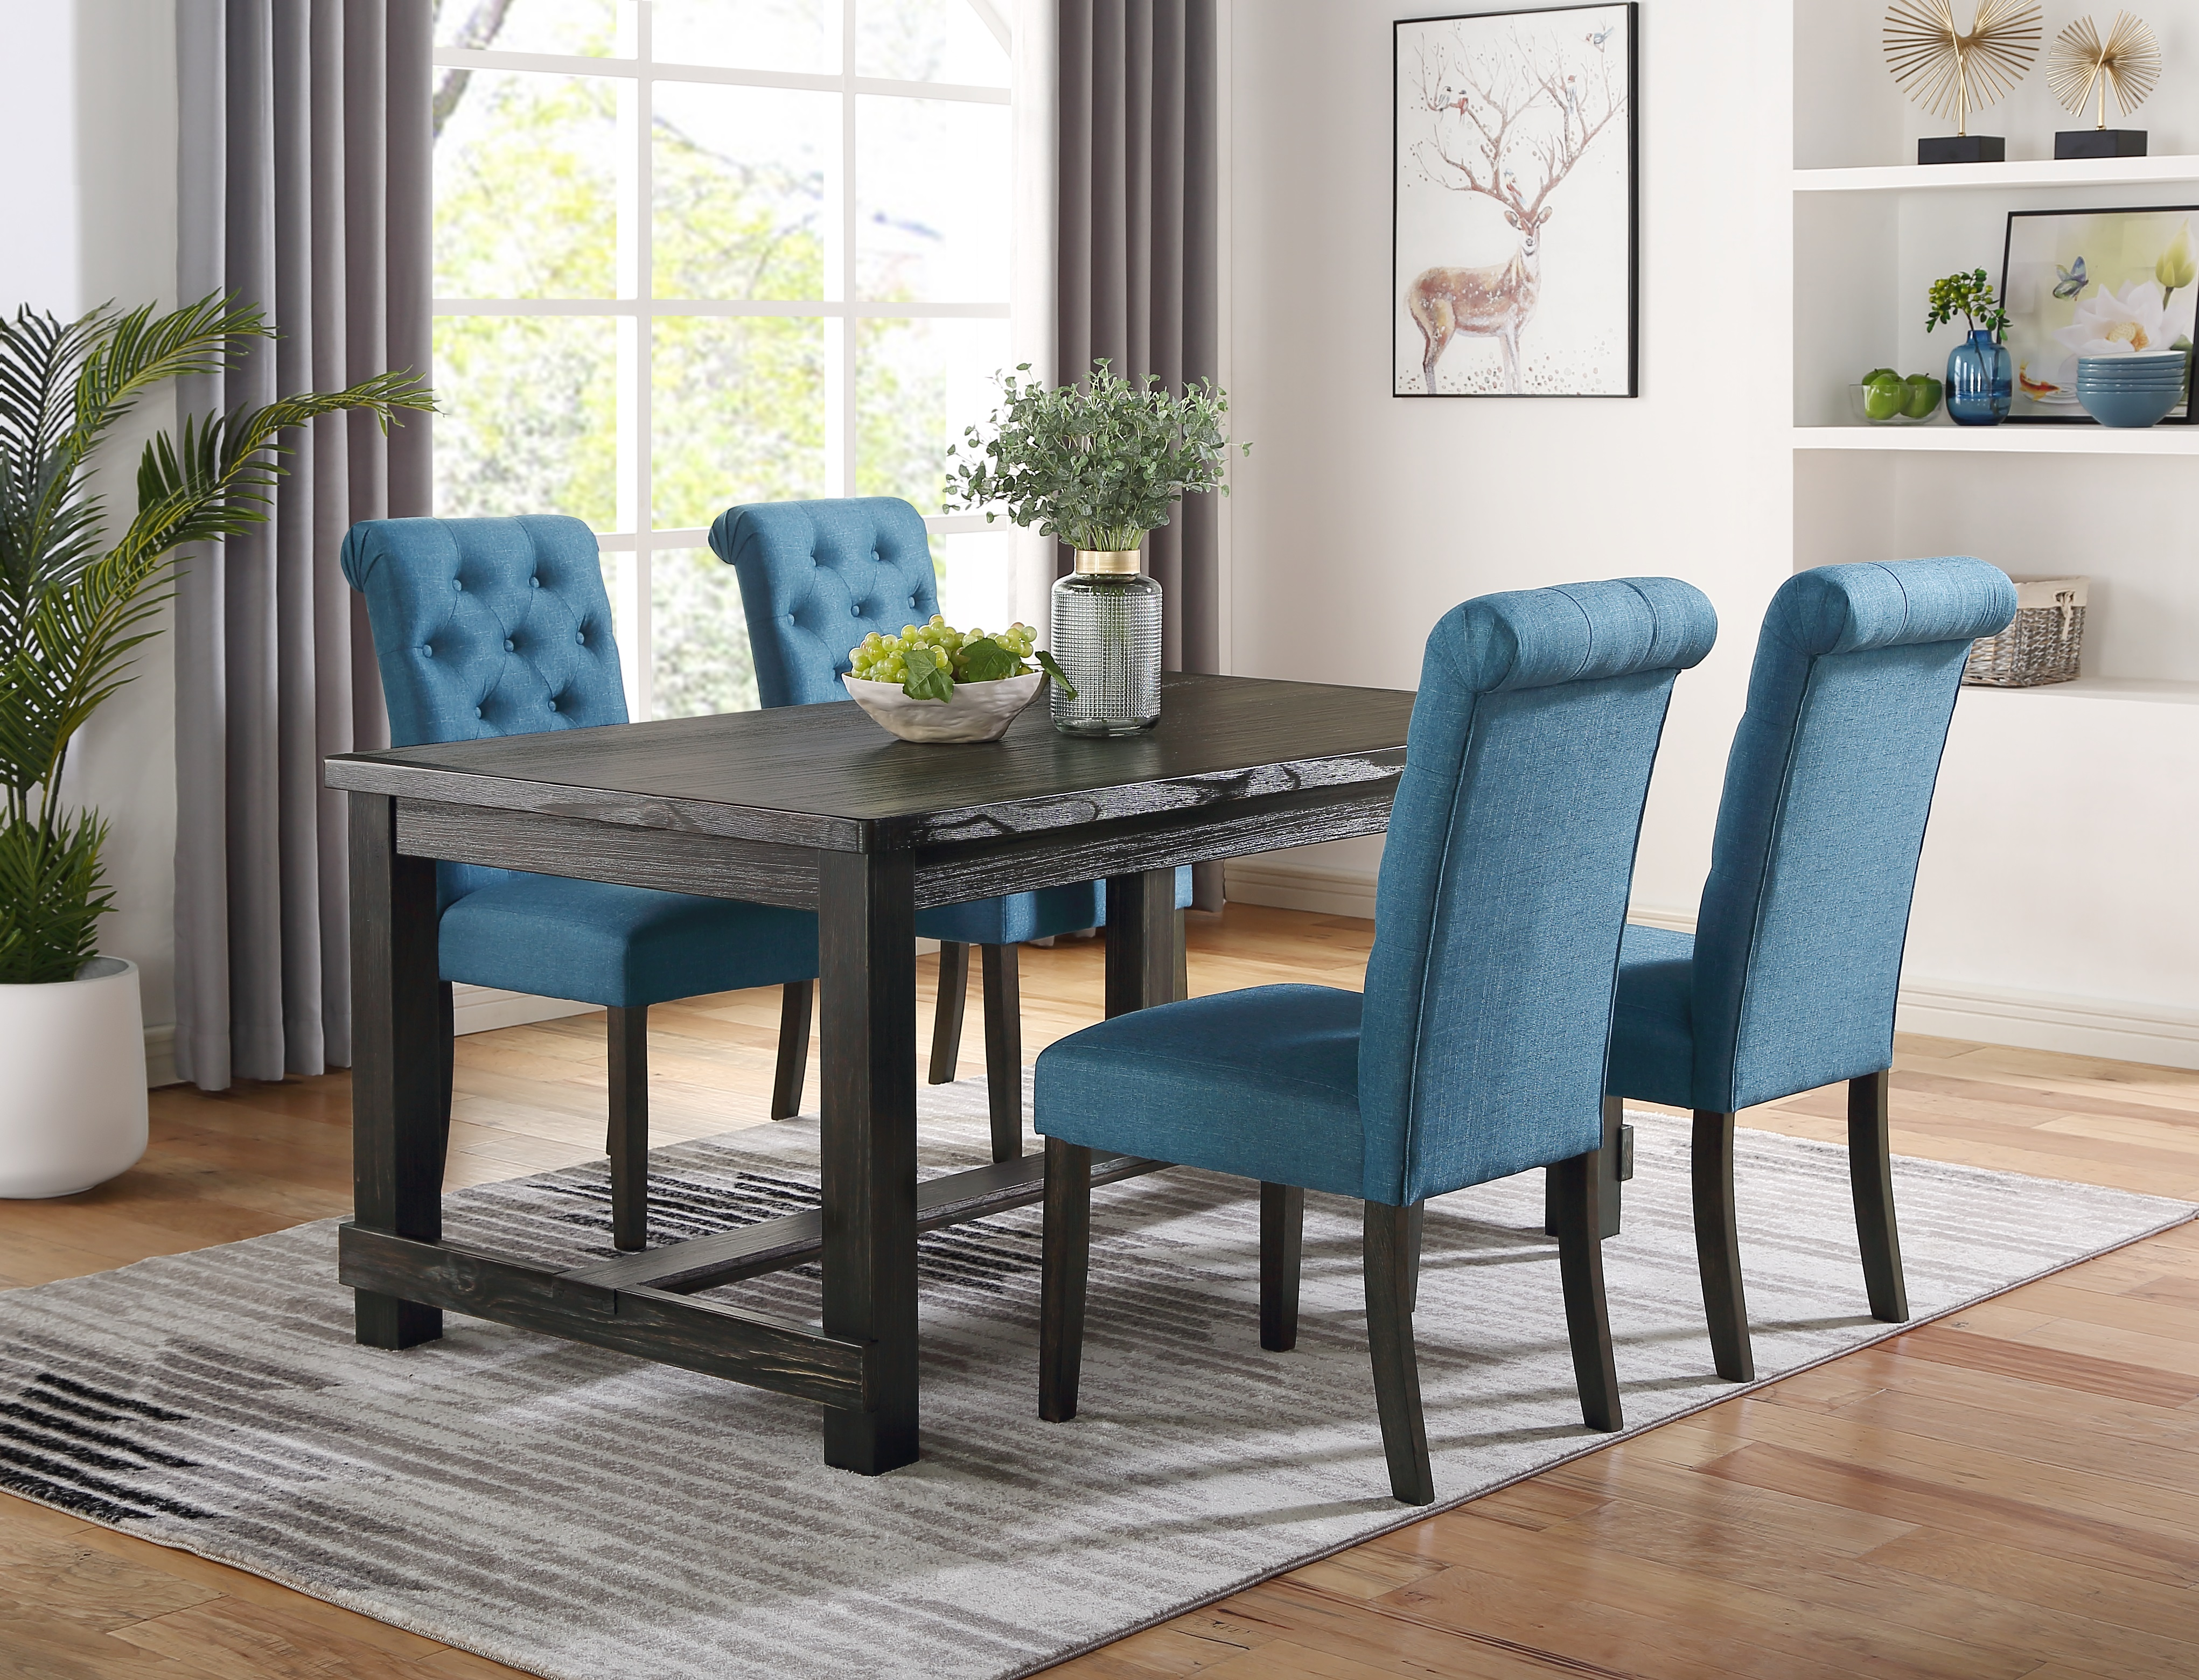 Leviton Antique Black Finished Wood Dining Set, Table with Four Chairs, Blue